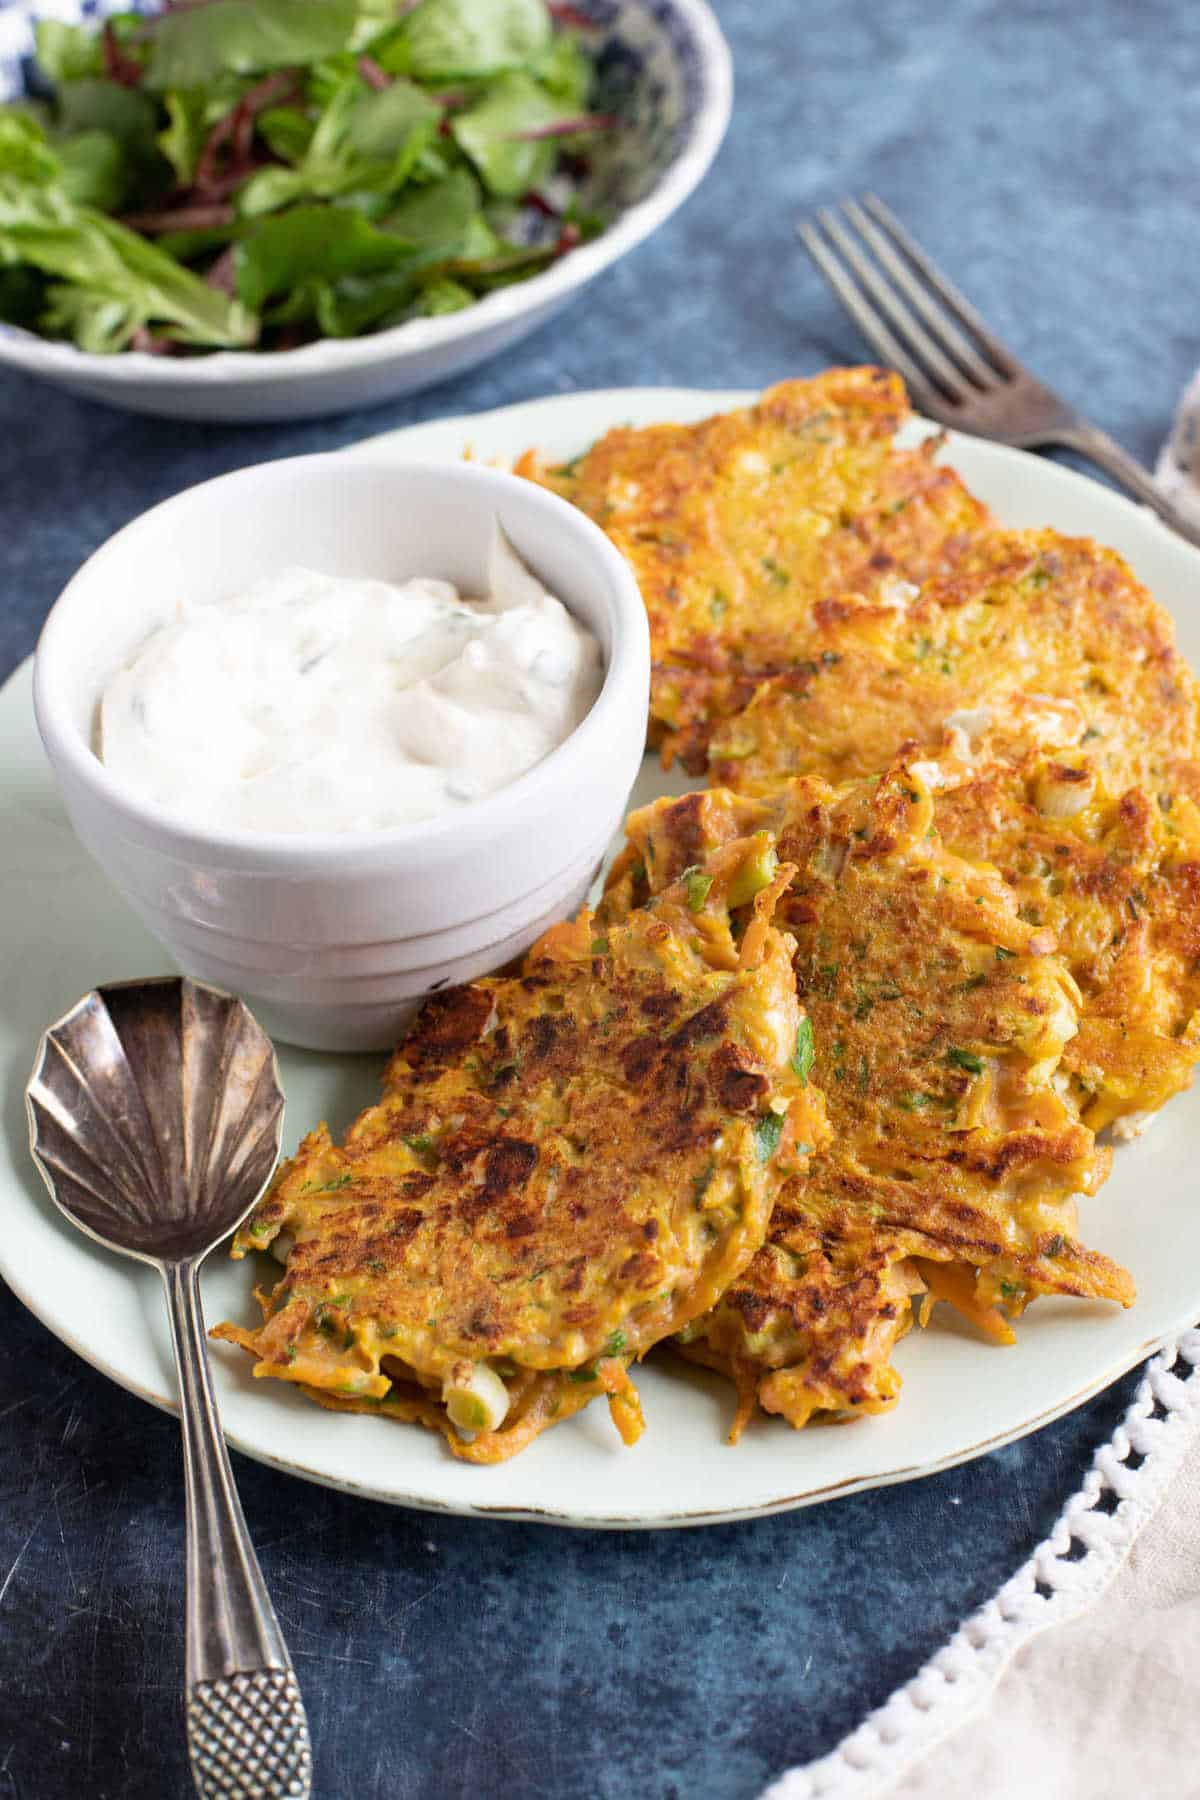 Easy carrot fritters with a sour cream dip and salad.